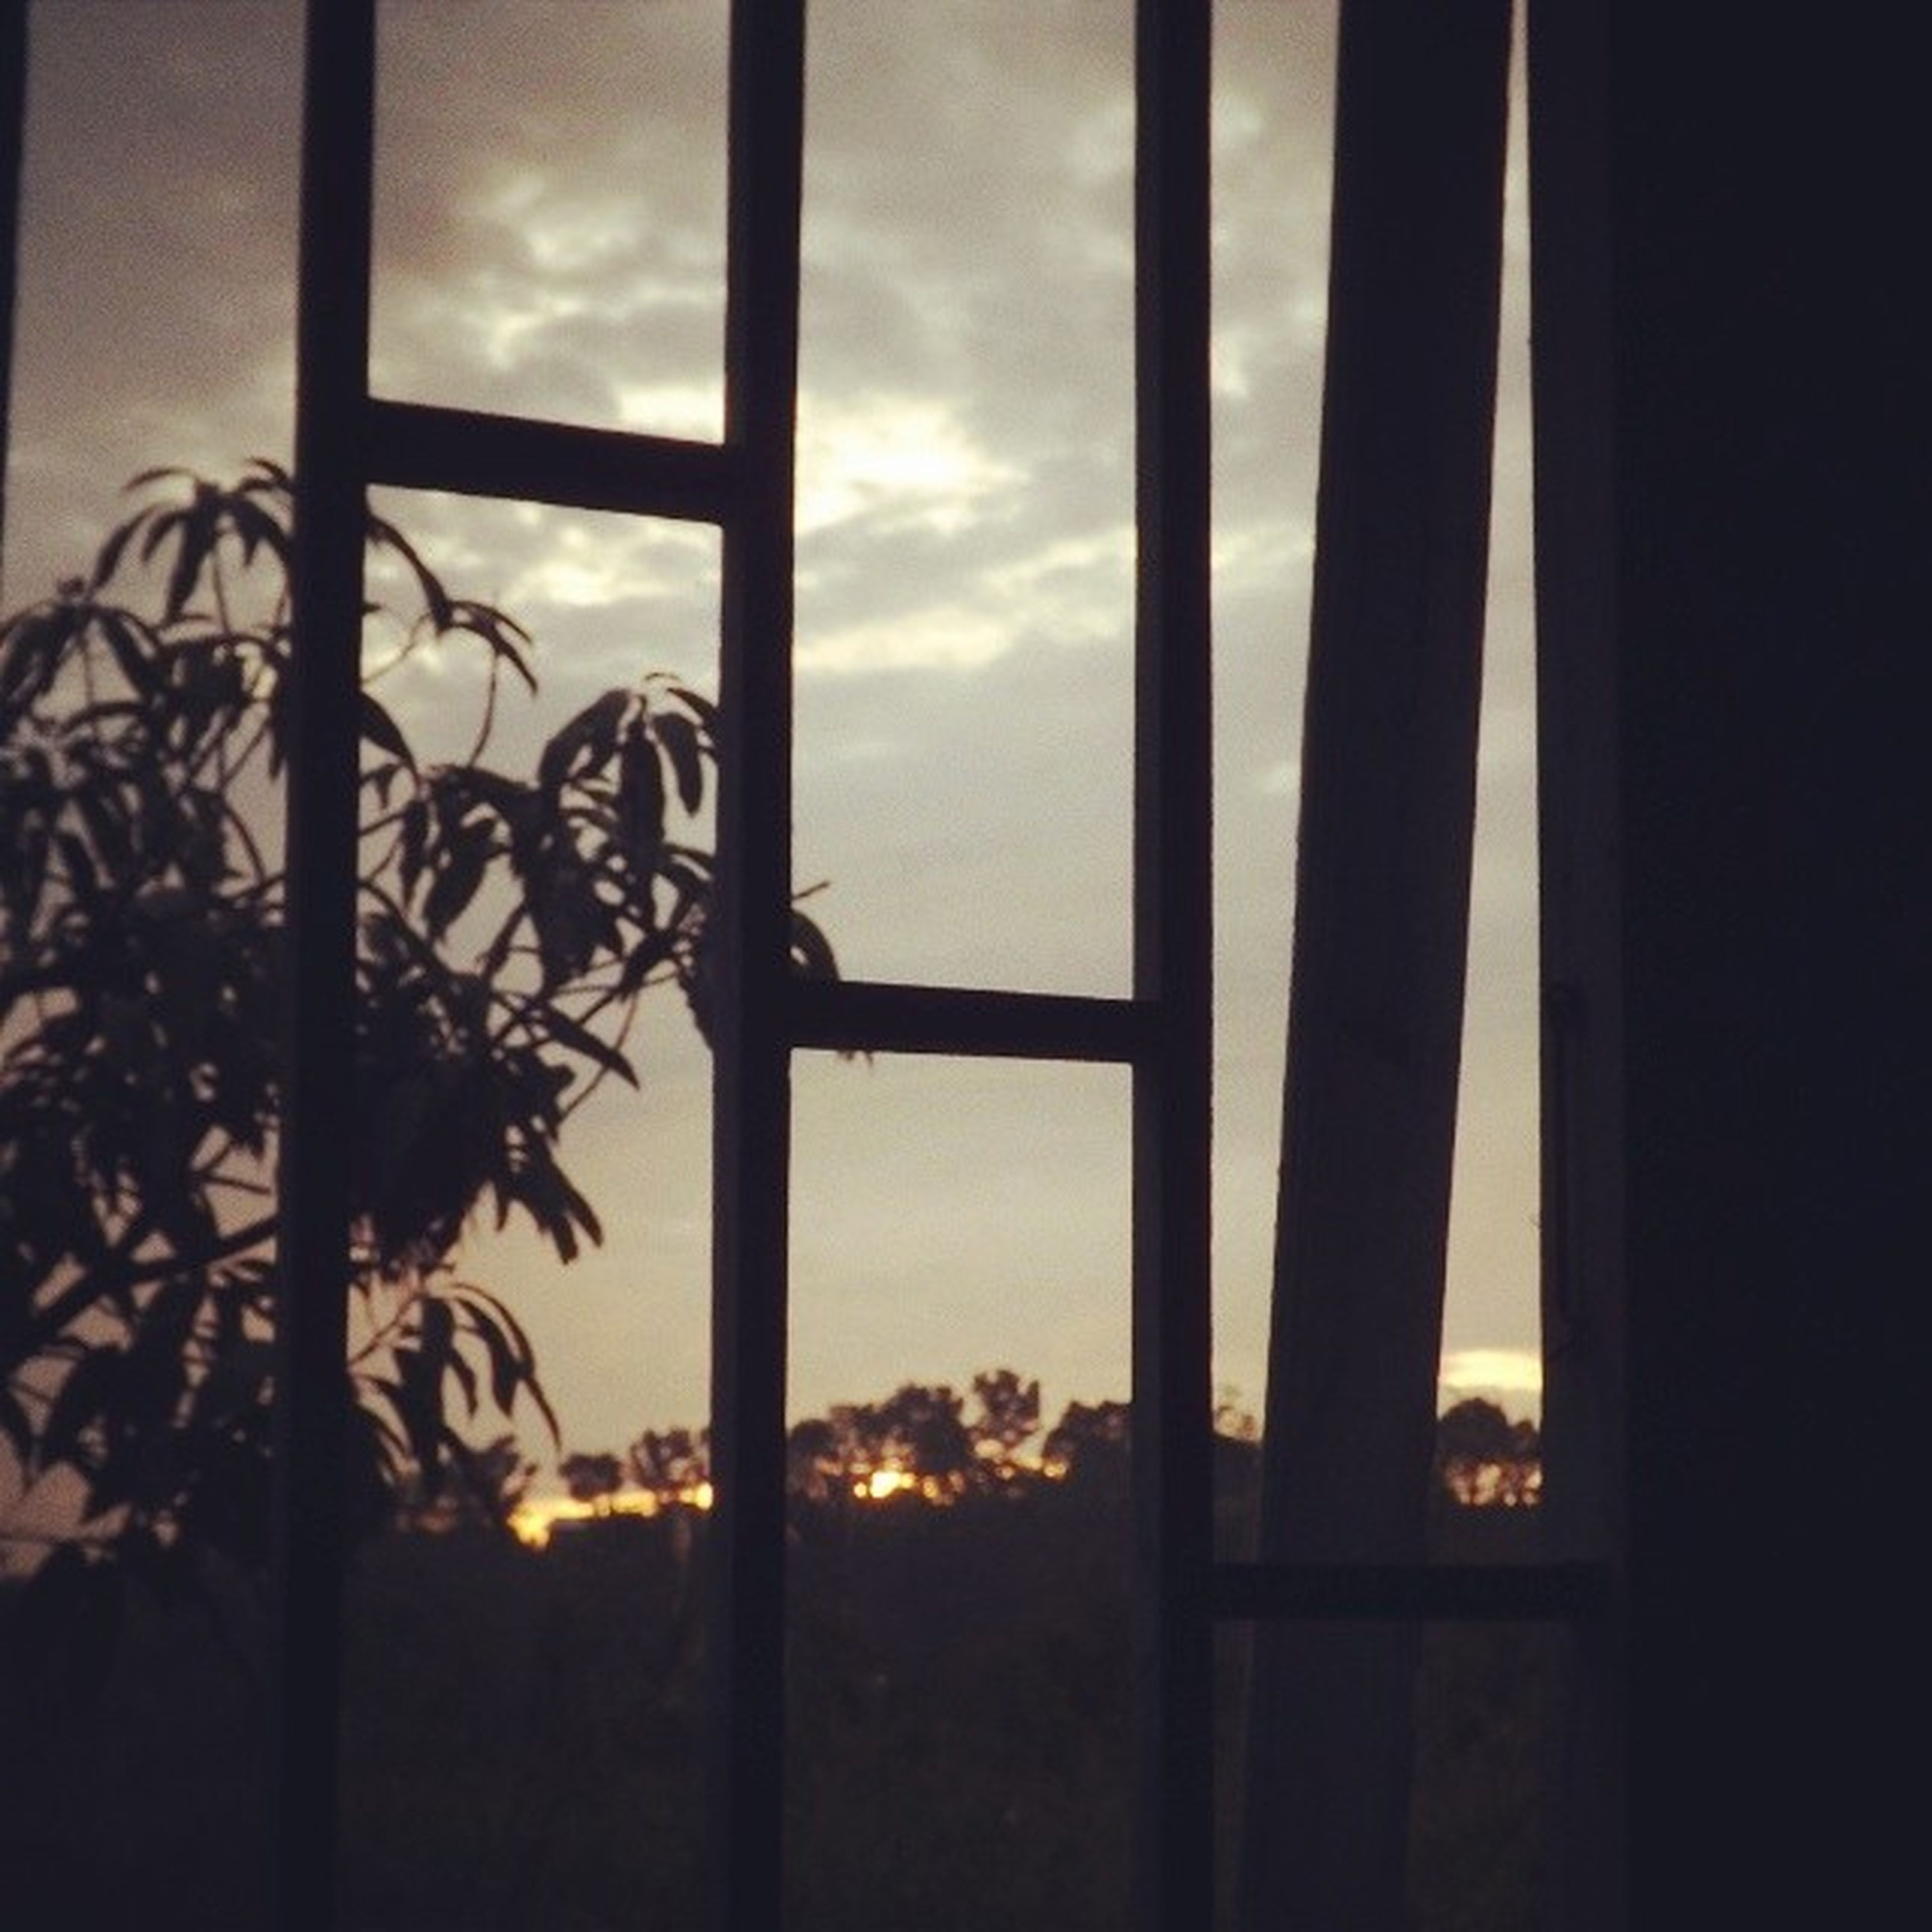 silhouette, sky, sunset, low angle view, indoors, built structure, window, cloud - sky, architecture, metal, cloud, dark, no people, protection, safety, cloudy, dusk, security, sunlight